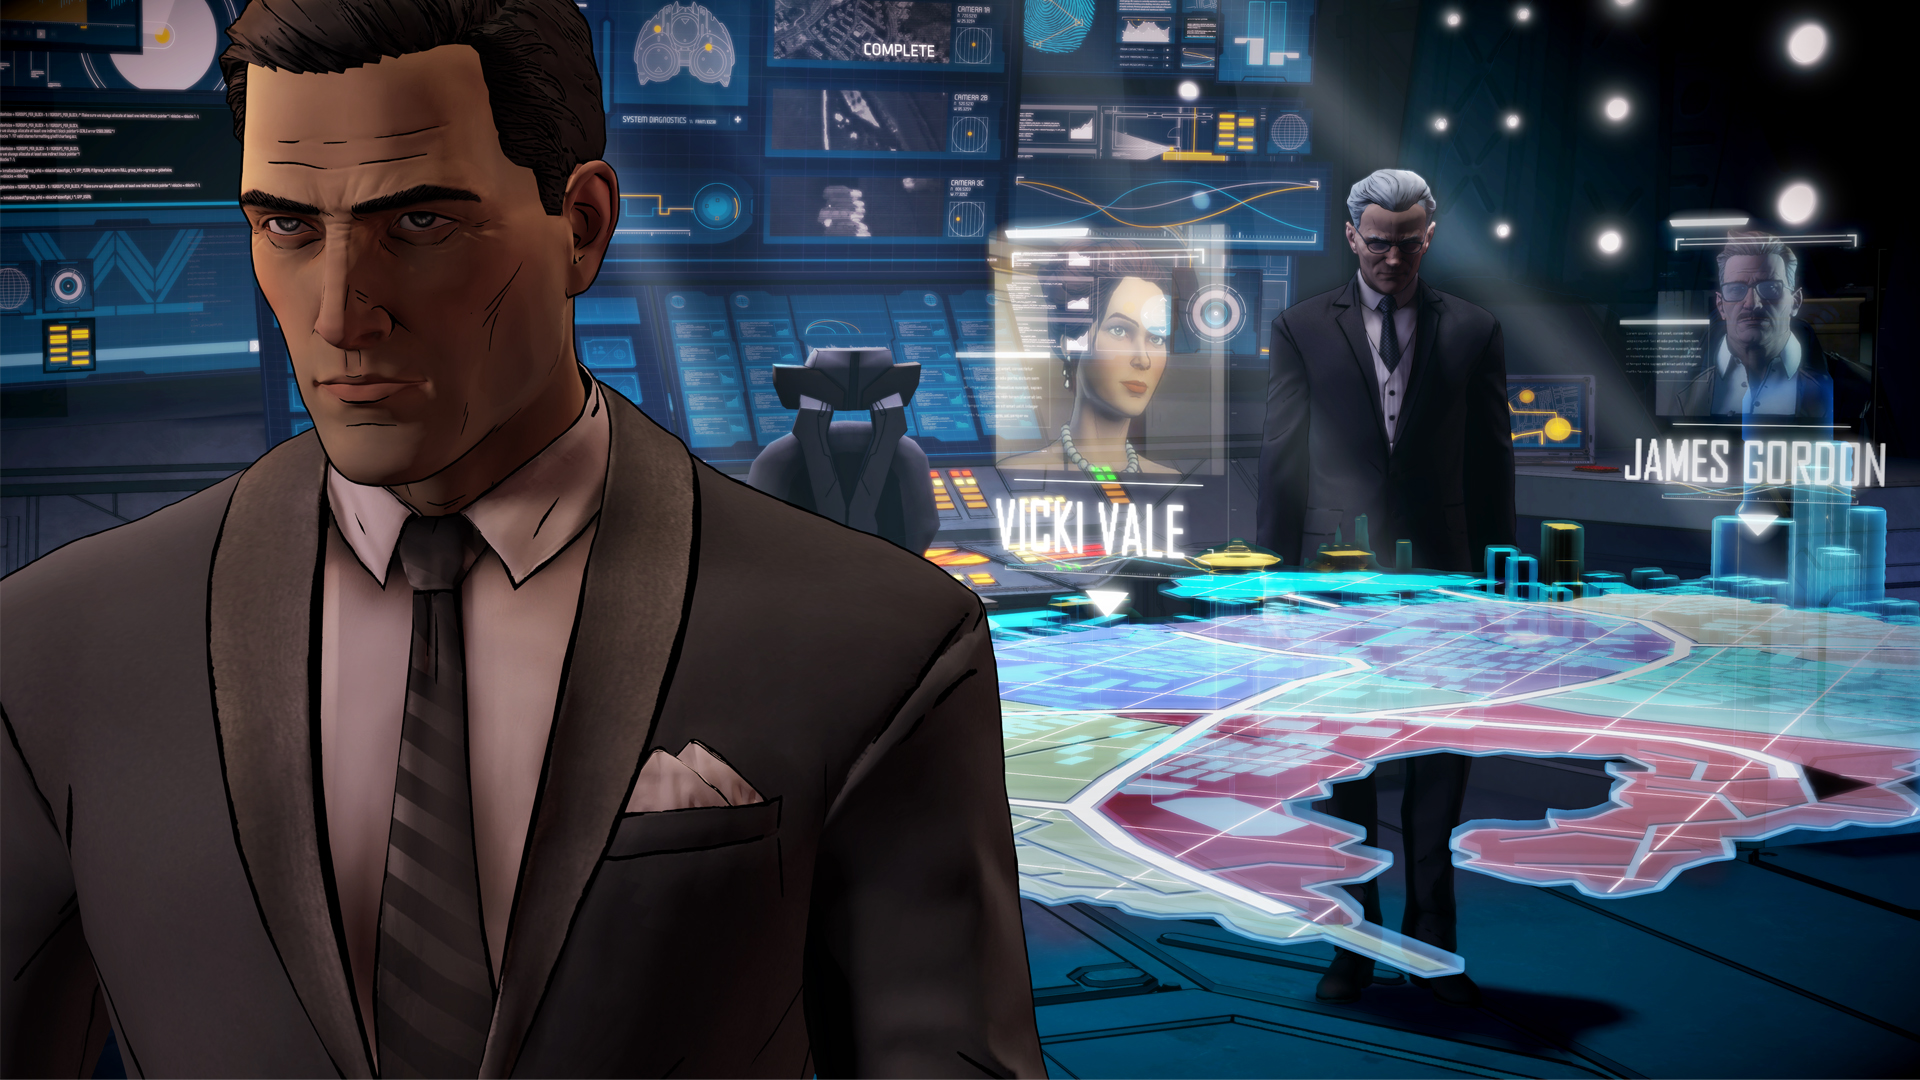 ss ac3c448dc77bc1938958109de90691b4bb9cdb7c.1920x1080 - Batman - The Telltale Series - PC Completo